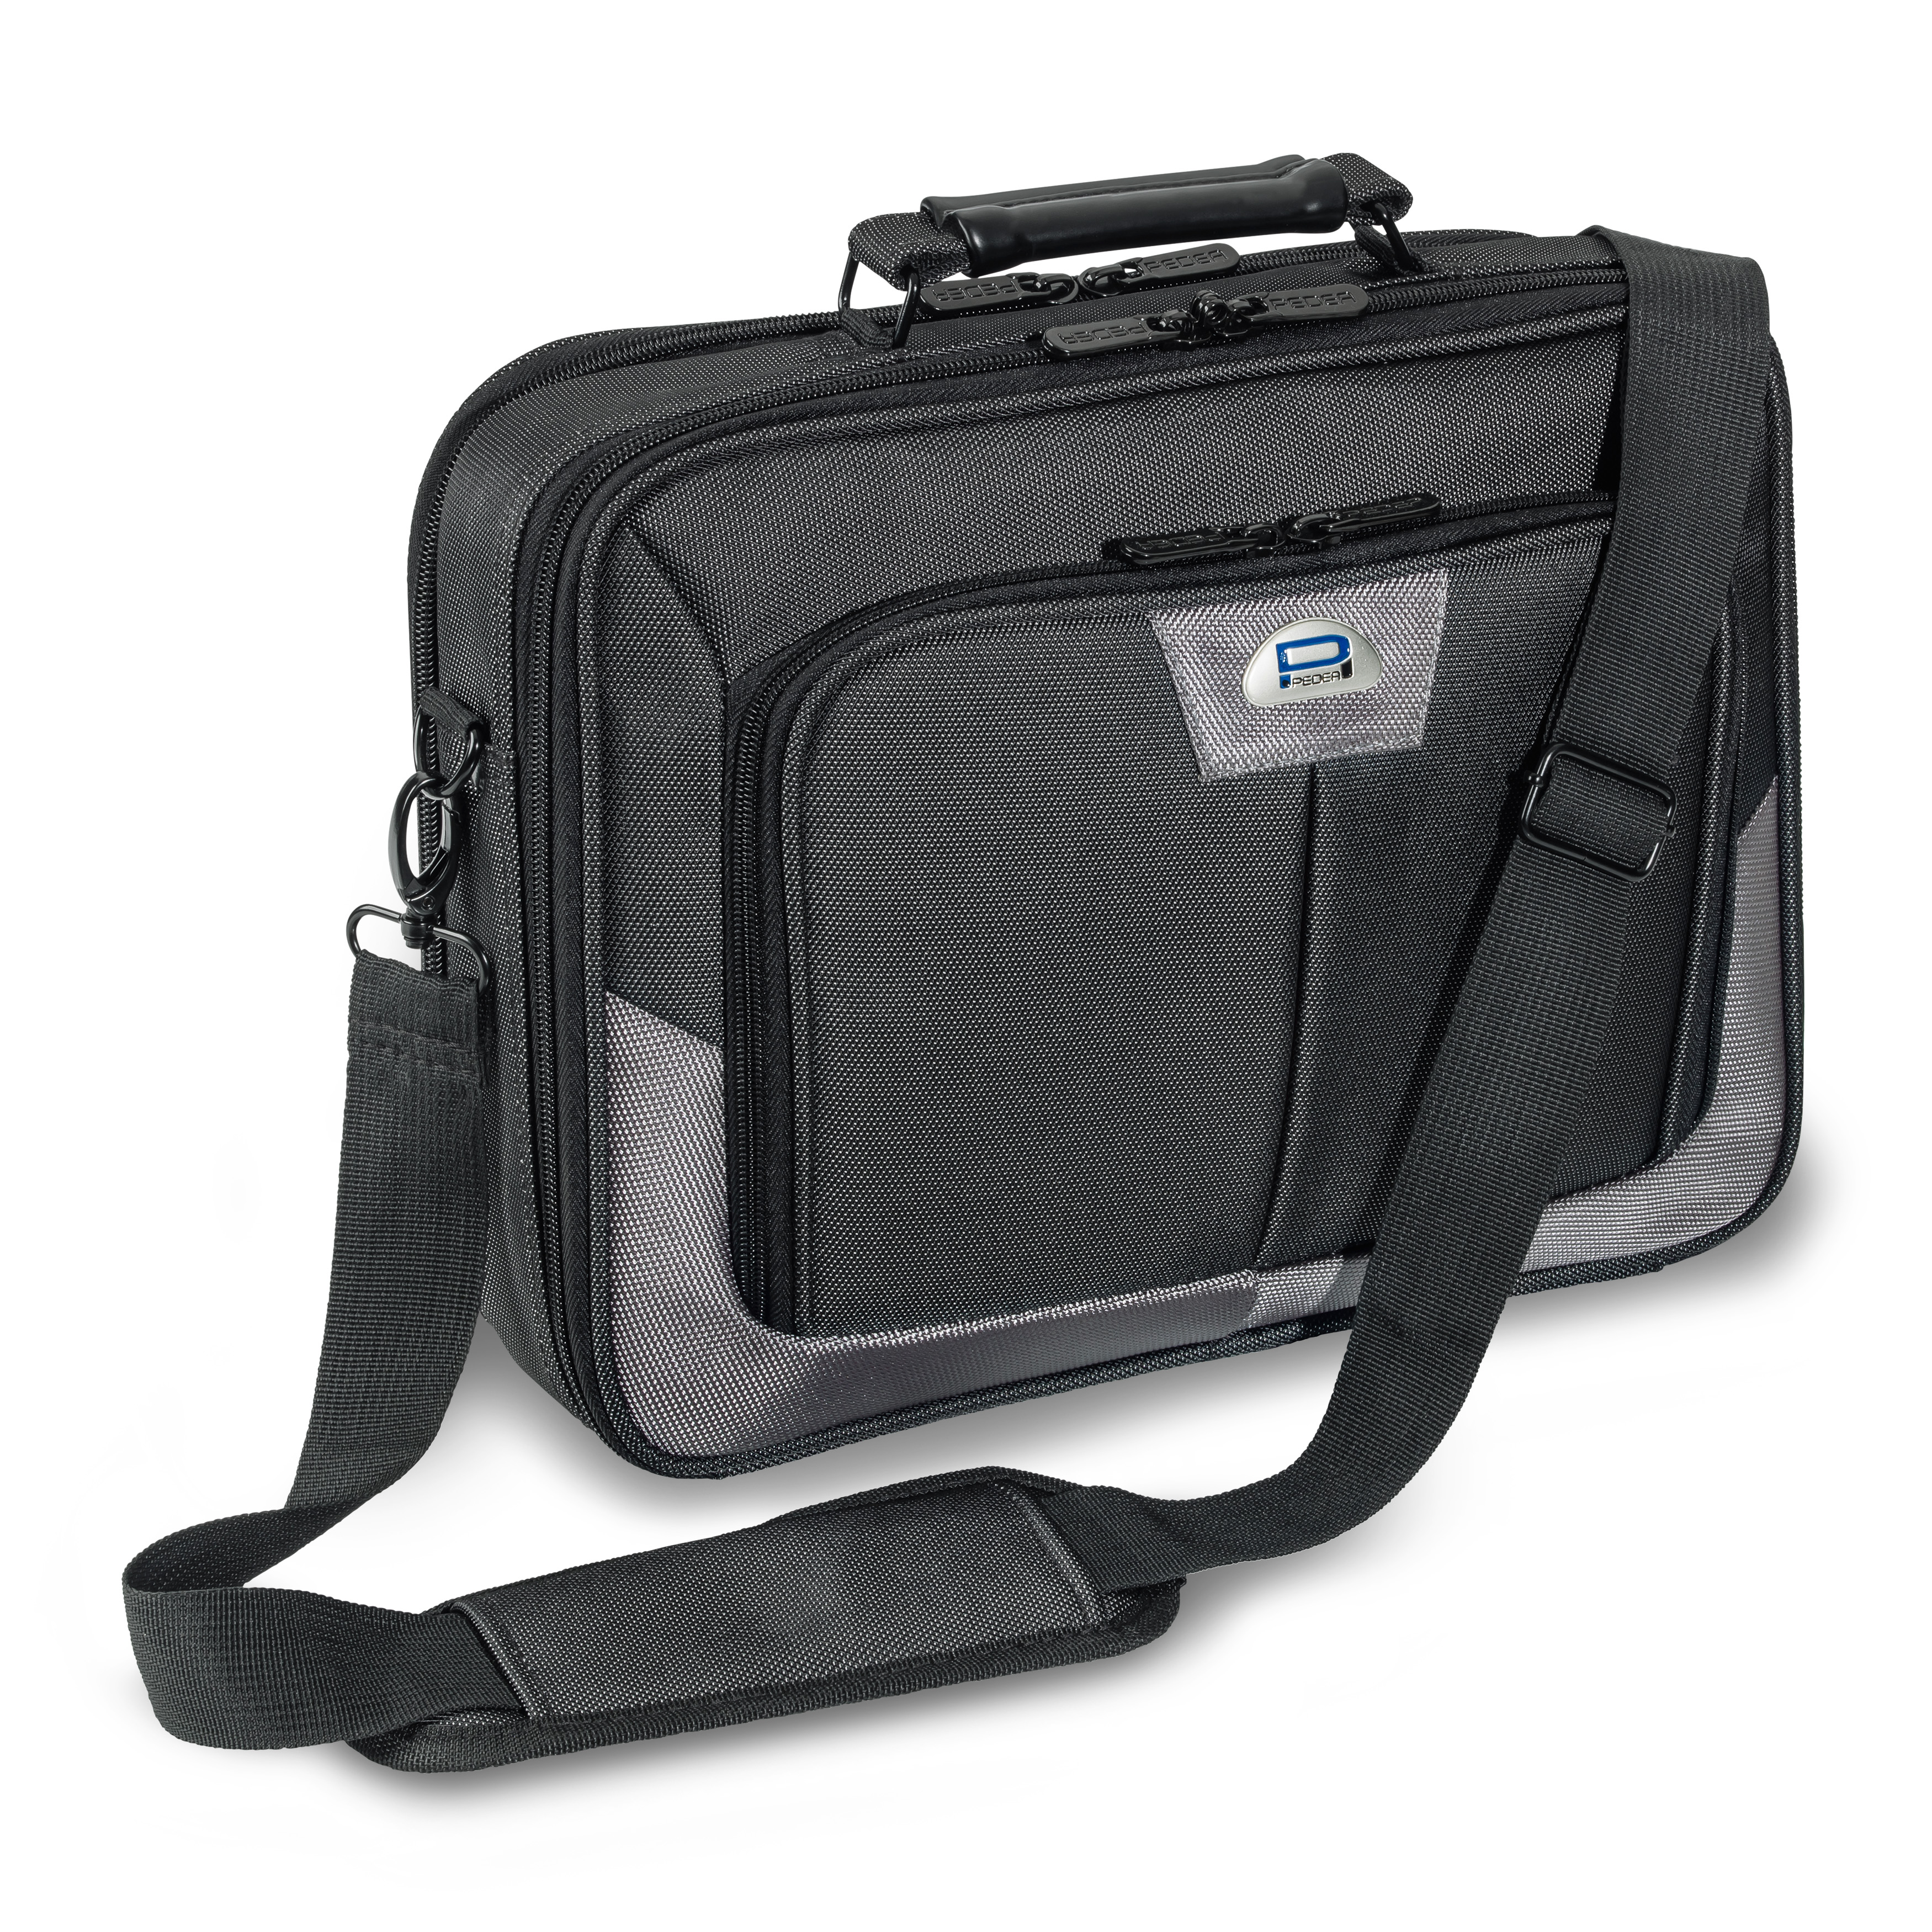 PEDEA Premium Clamshell Laptop Bag Case 15.6 inch